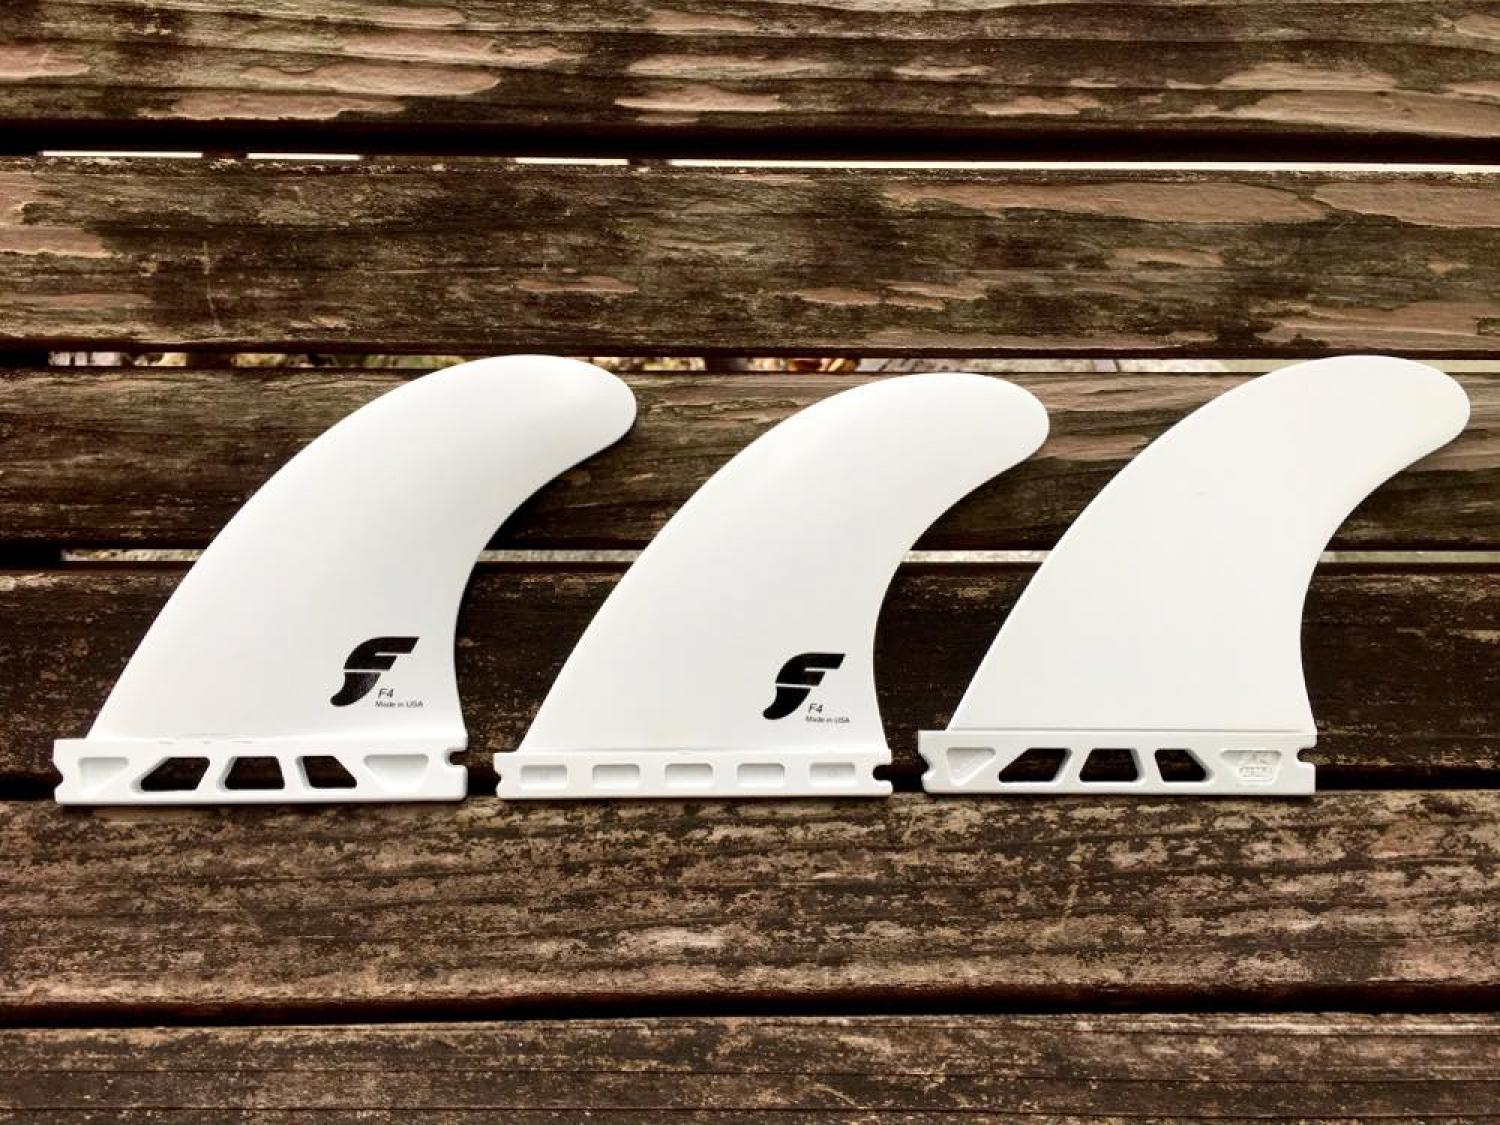 FUTURE FIN F4 THERMO TECH Tri set